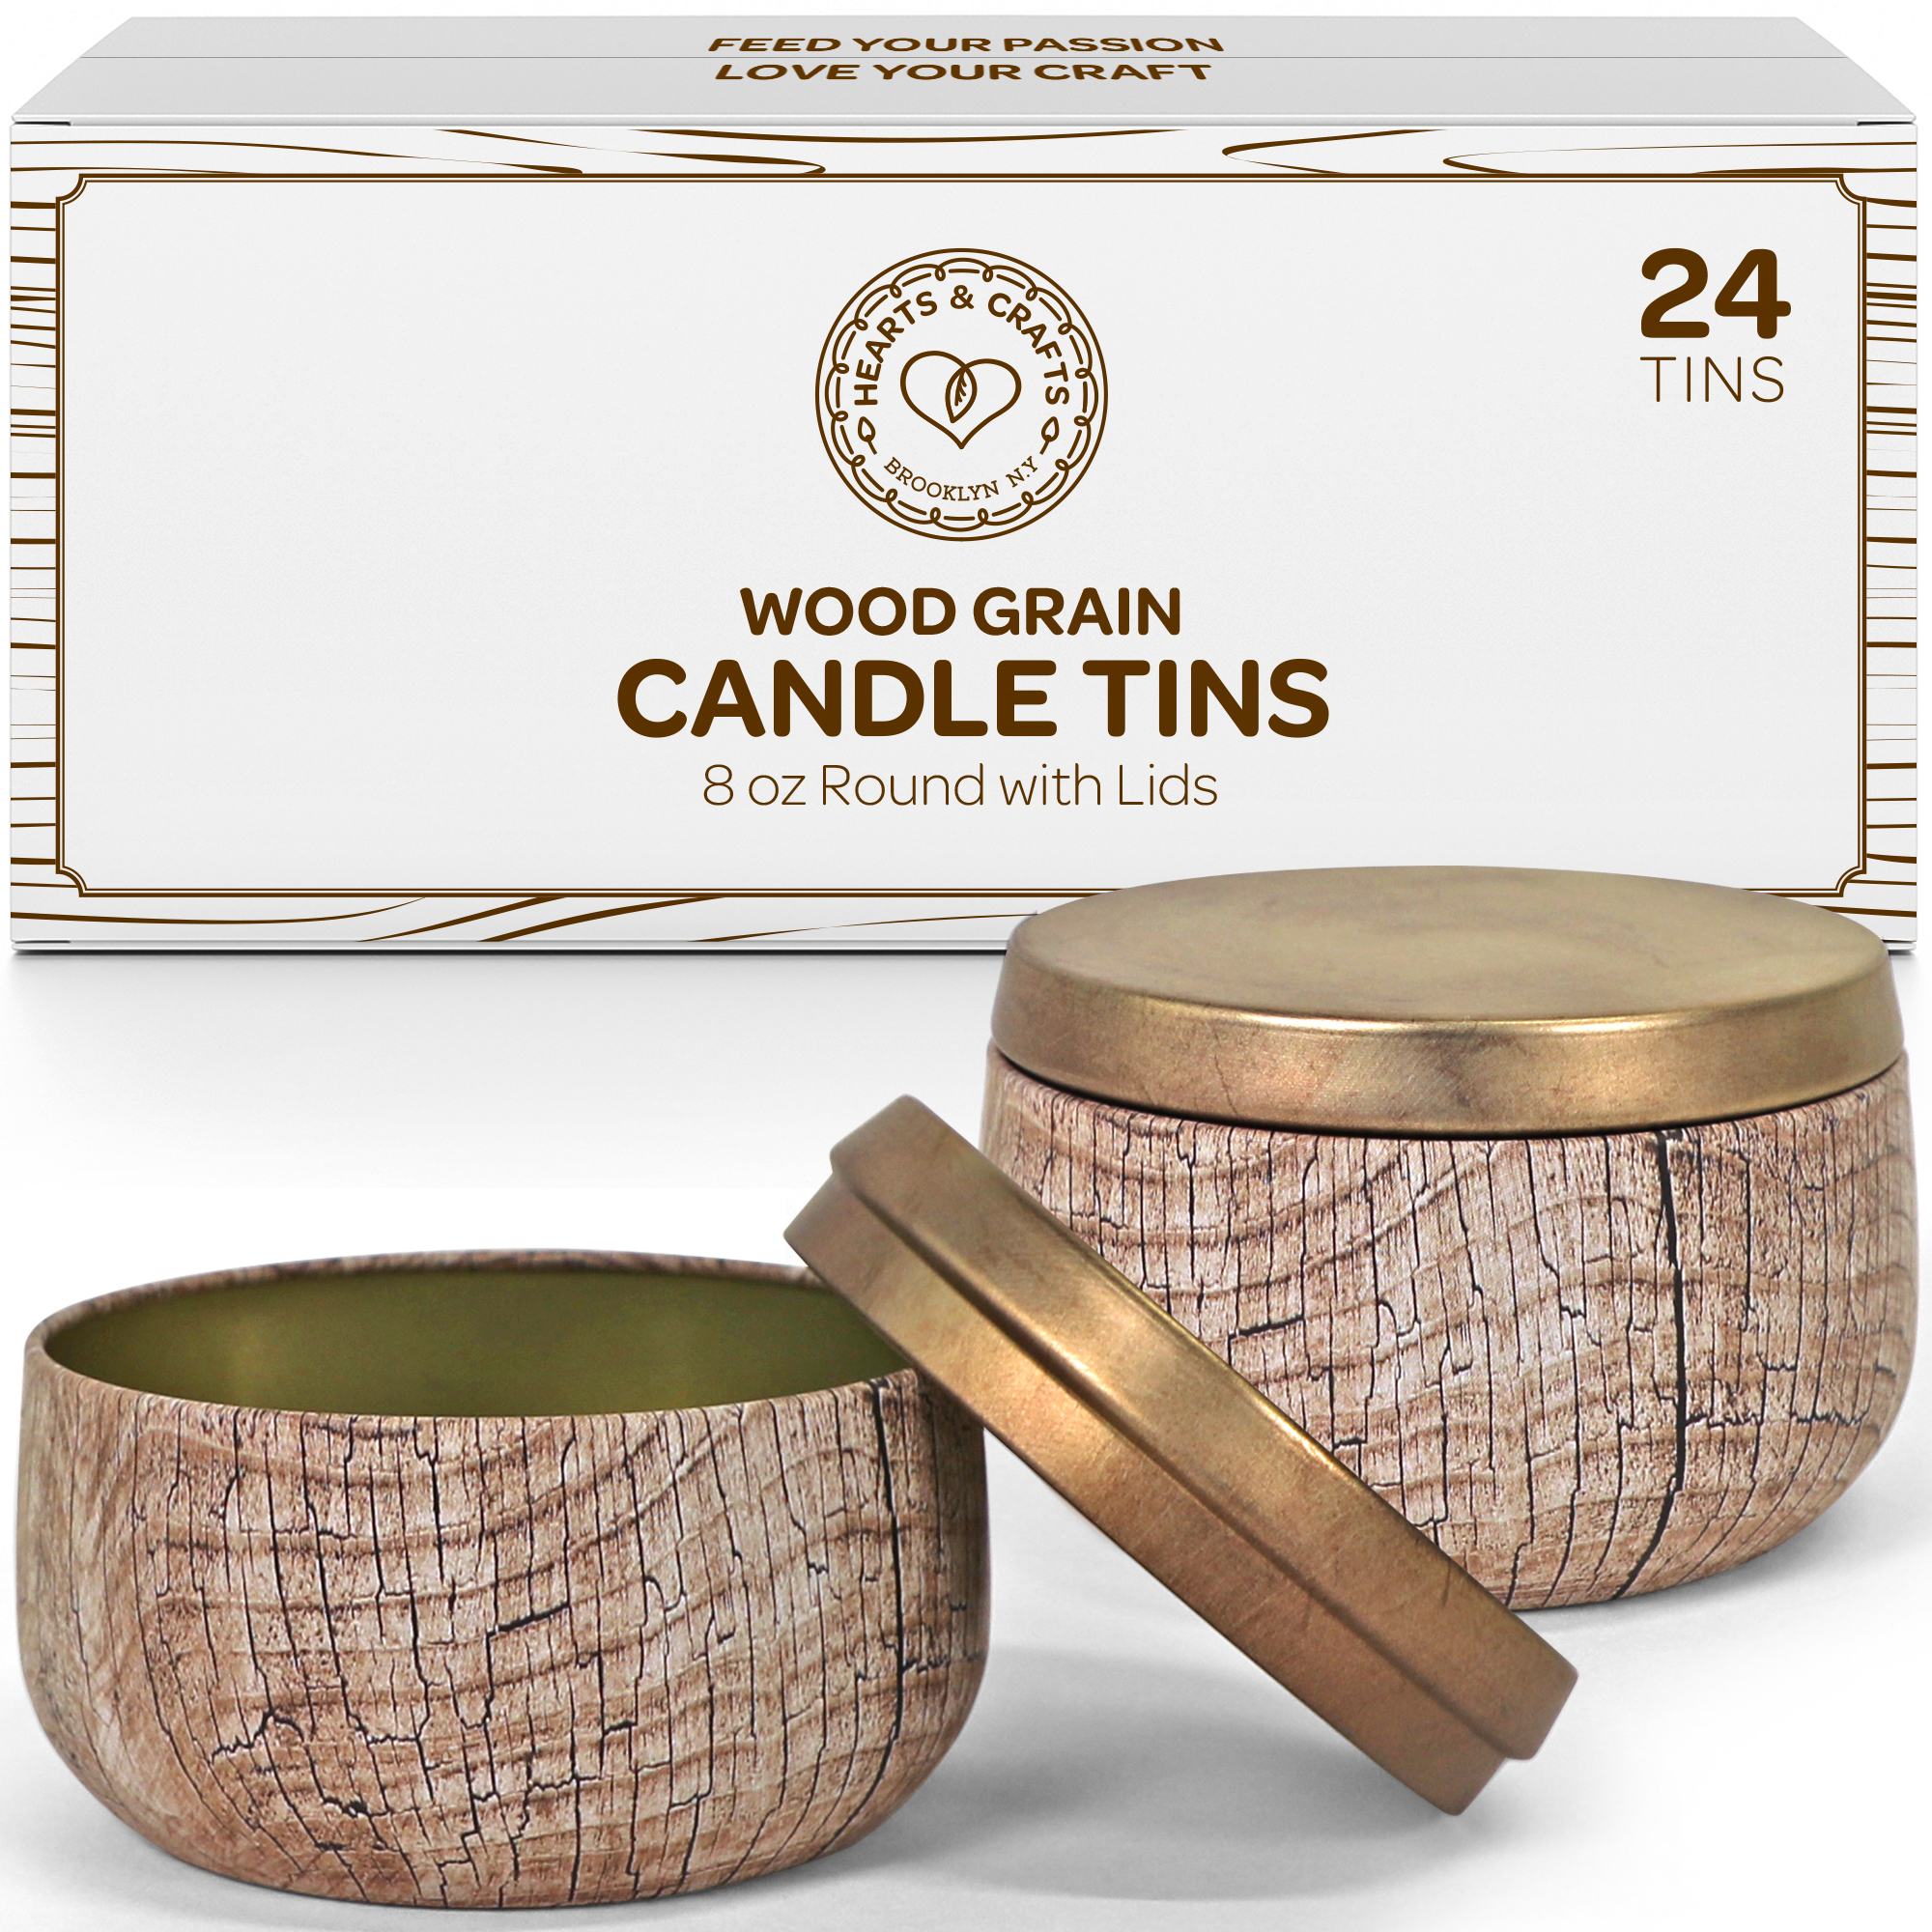 8oz Wood Grain Candle Tins, 24 Count